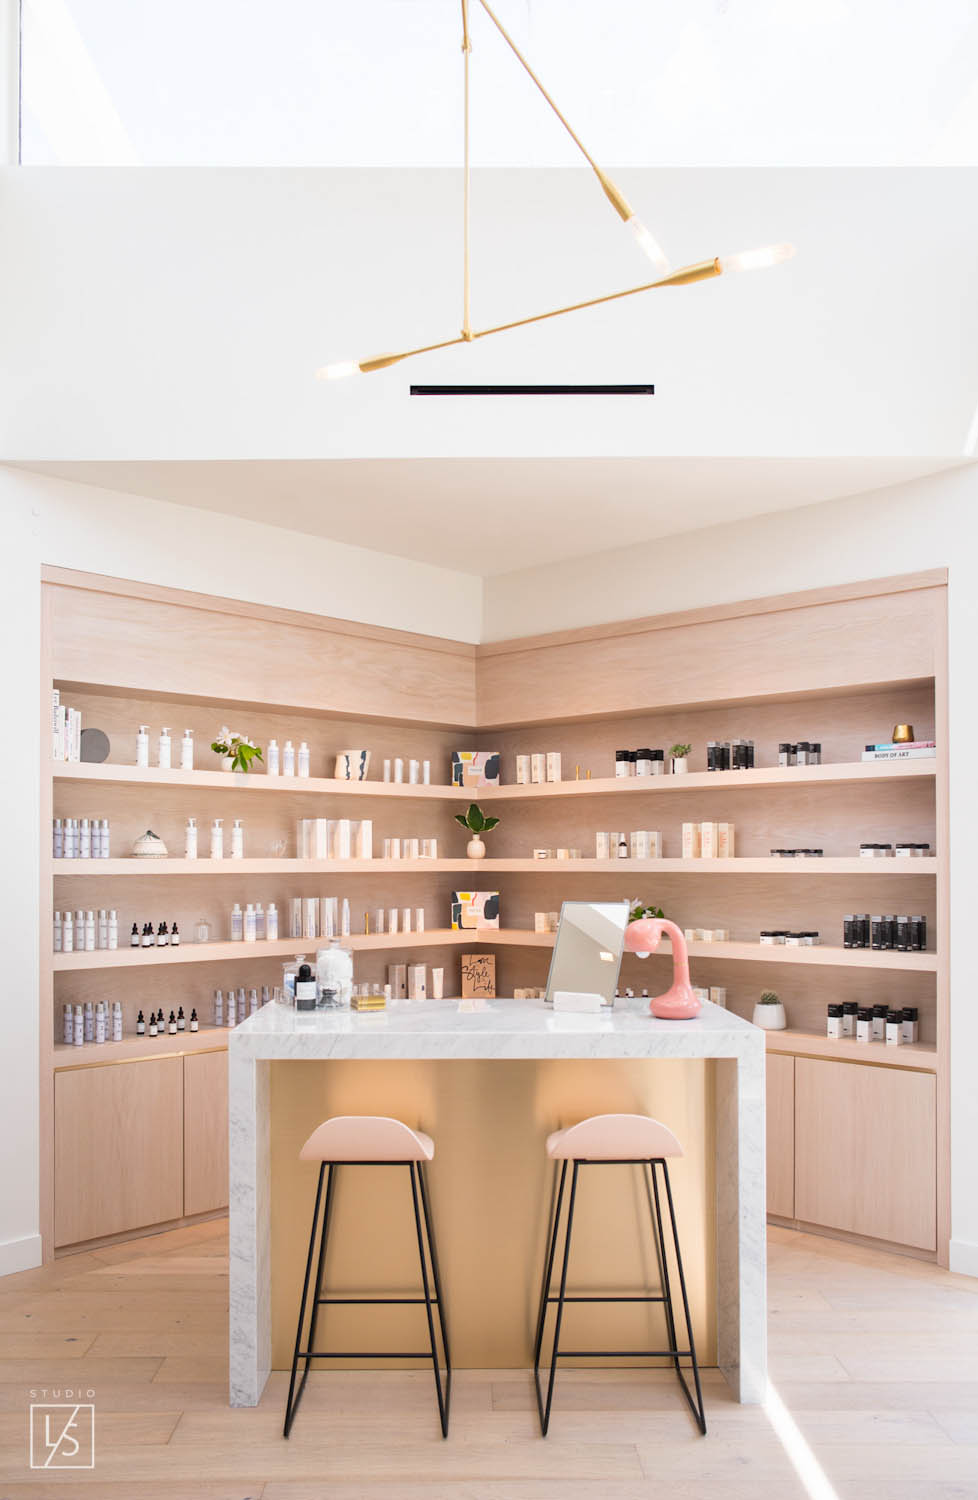 FacileWeho-Shelves-LifeStyle-Relth-14-web.jpg